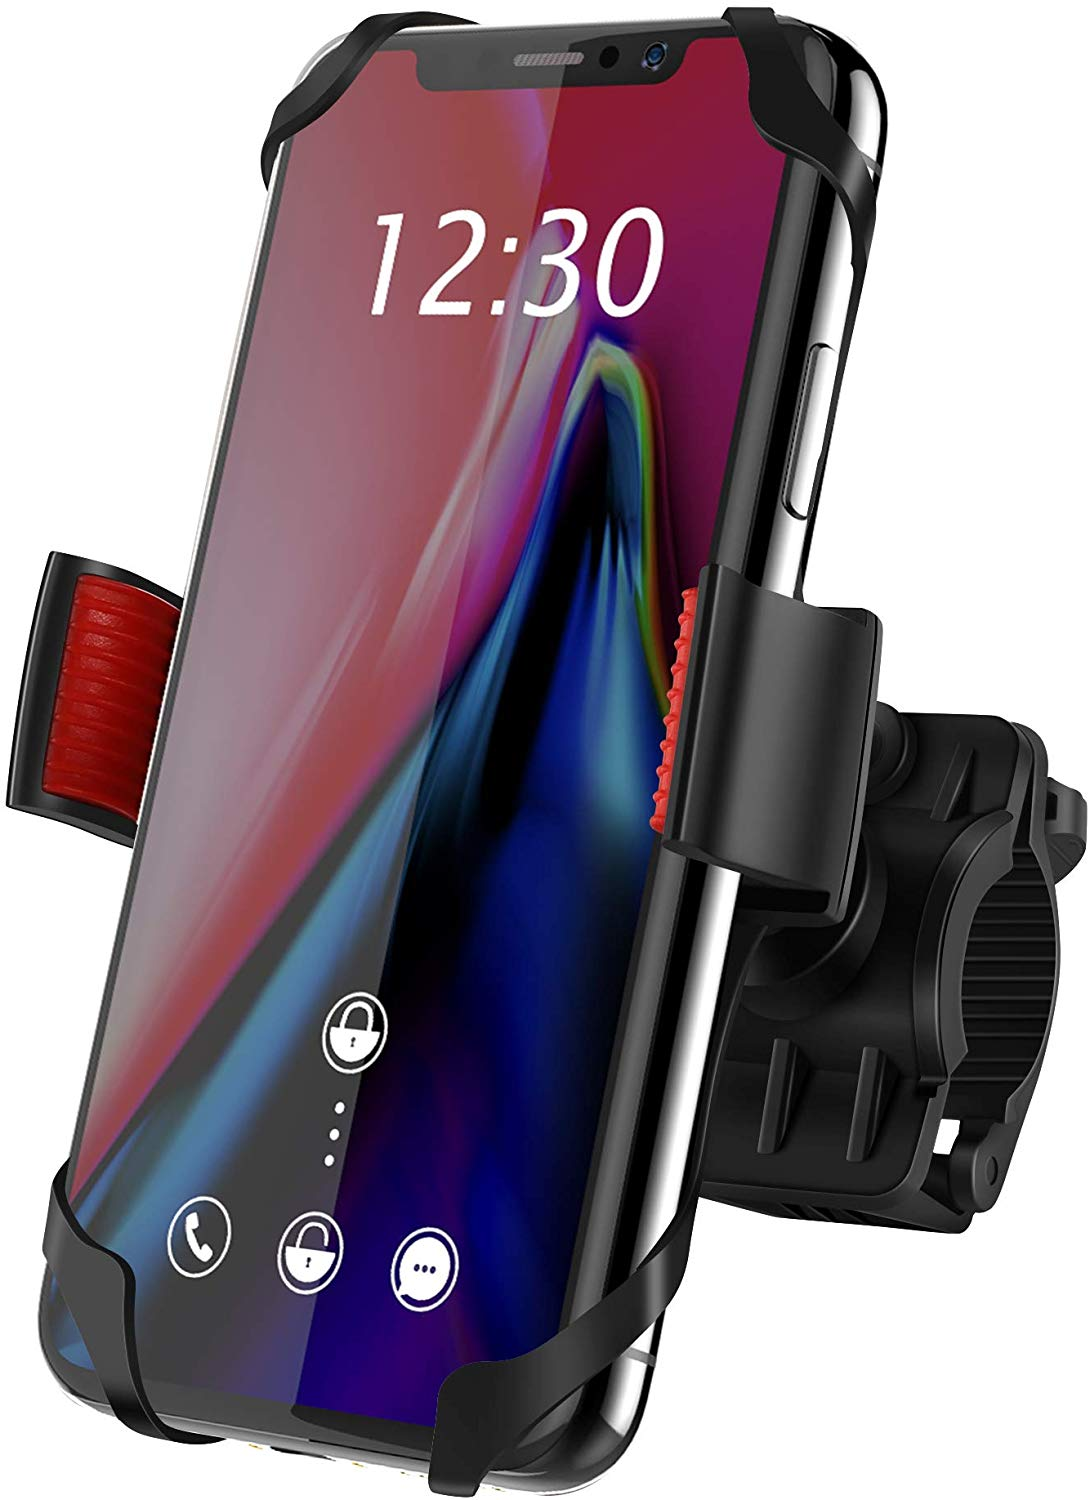 Bike Mount, IPOW Universal Cell Phone Bicycle Rack Handlebar & Motorcycle Holder Cradle for iPhone Xs Max XR X 8 7 6 Plus,Samsung Galaxy S10+ S10 S9 S8 S7 Note 9 8,Nexus,HTC,LG